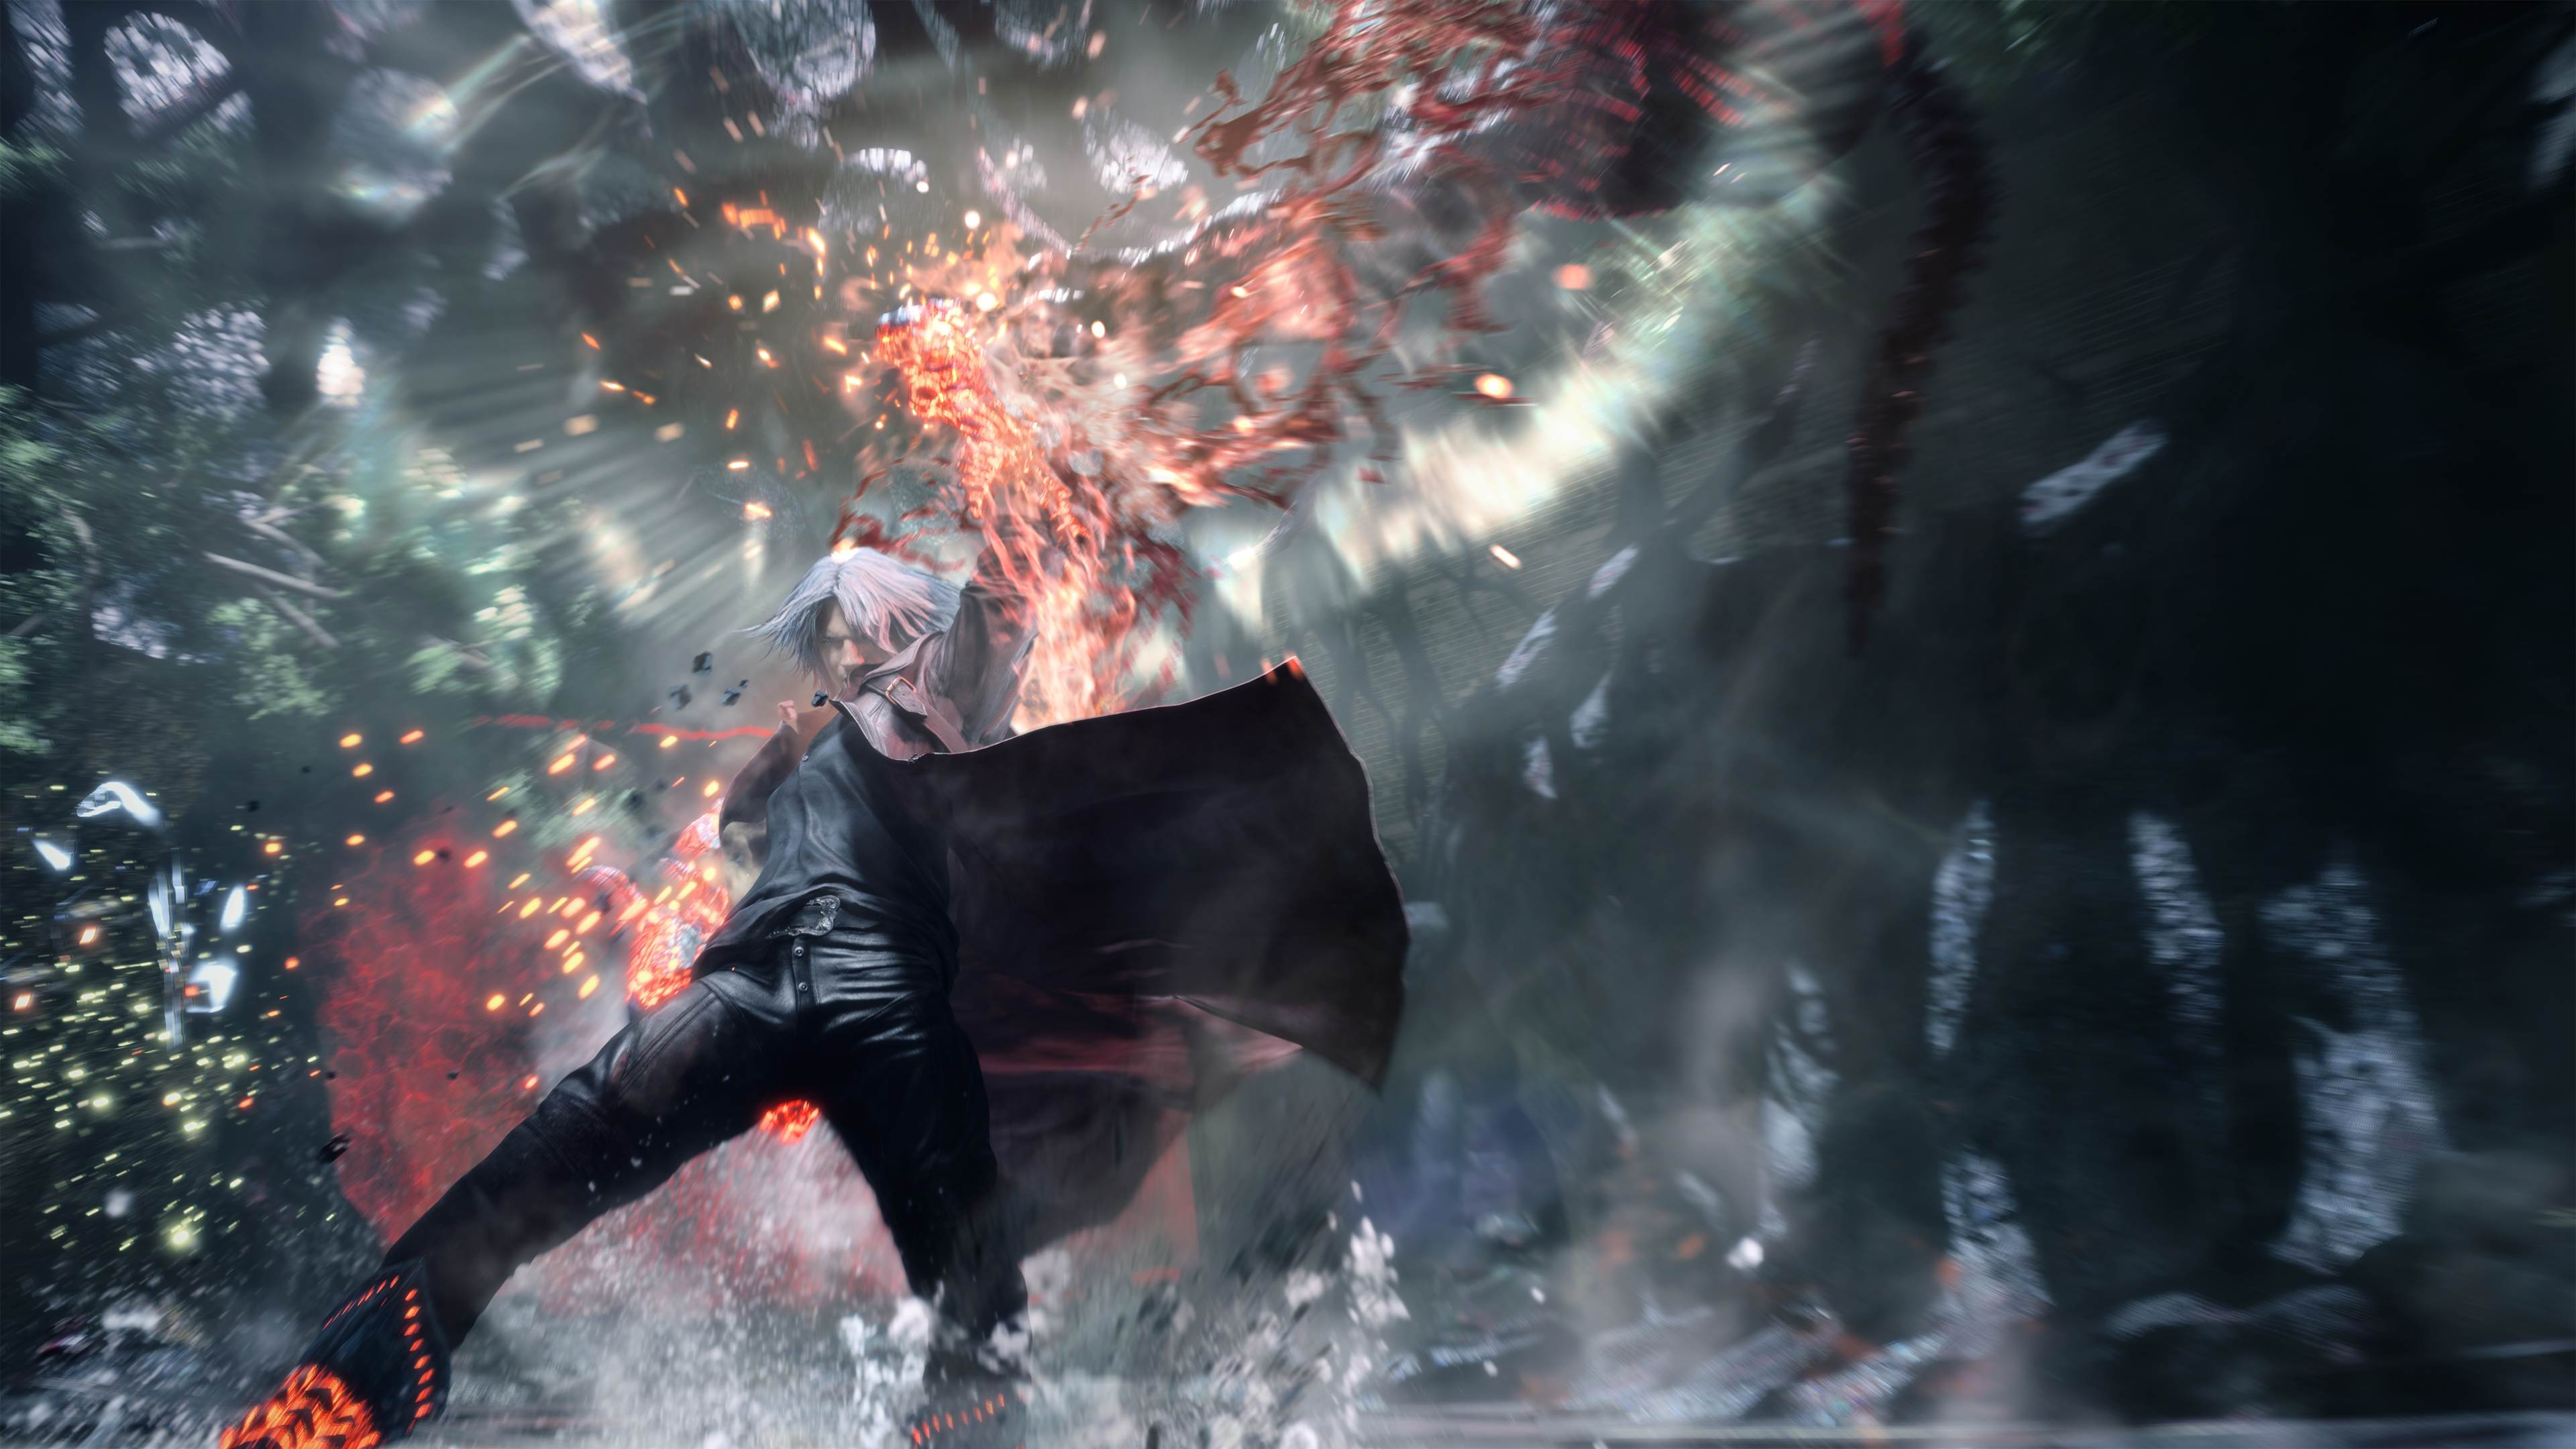 Devil May Cry 5 4k 2019 Game, HD Games, 4k Wallpapers